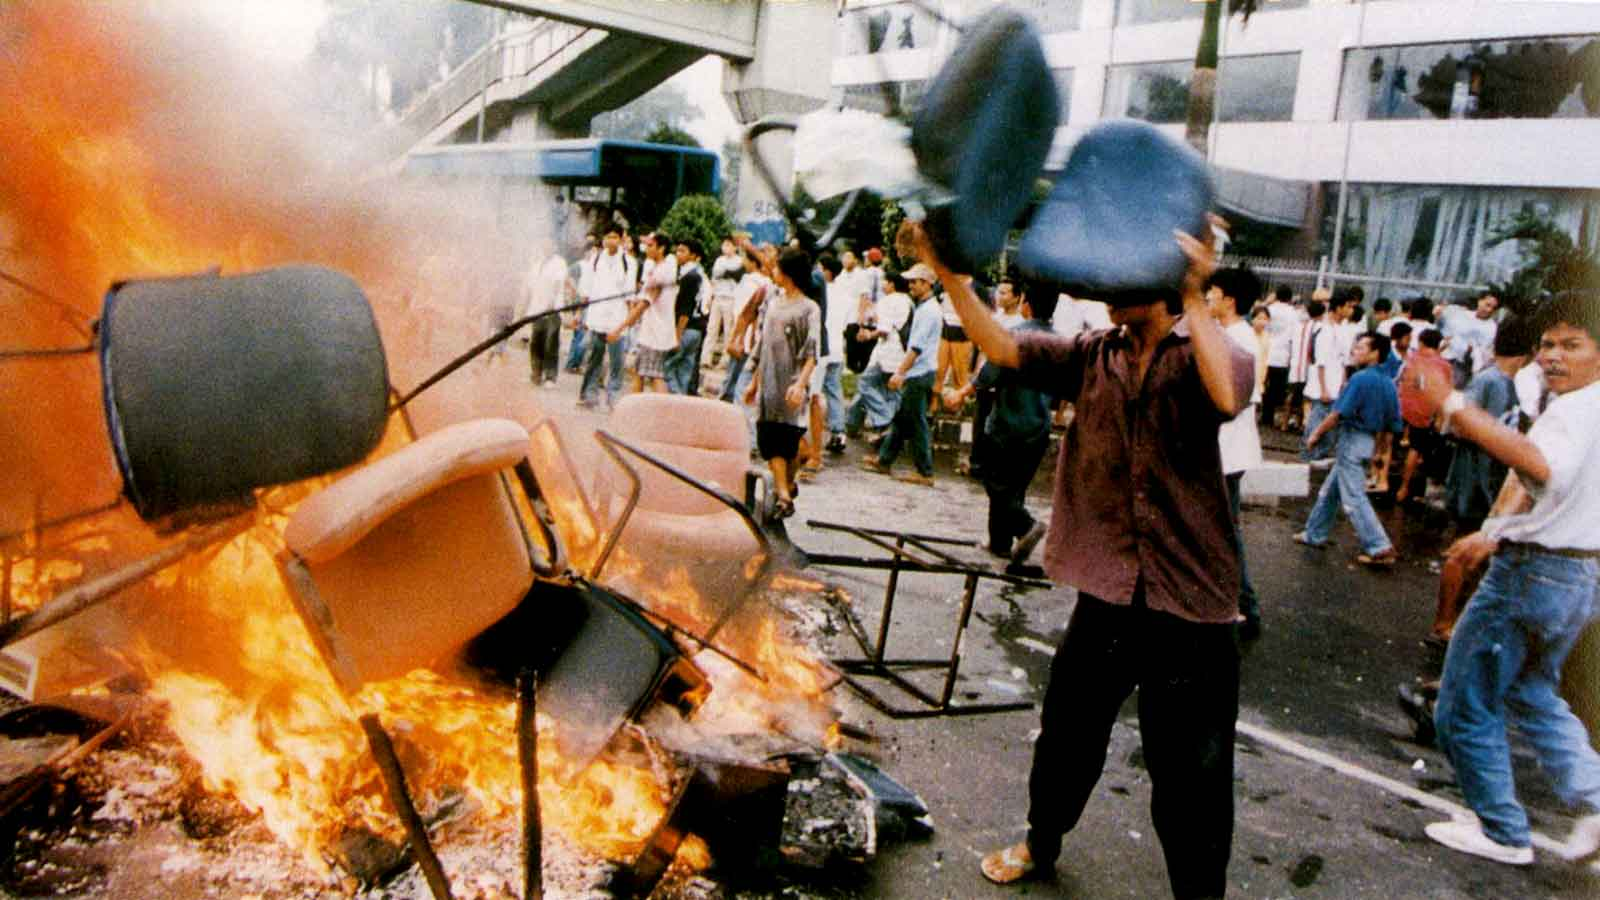 The riots and demonstration in May 1998, followed by the downfall of Suharto's New Order and the dawn of Reformation.